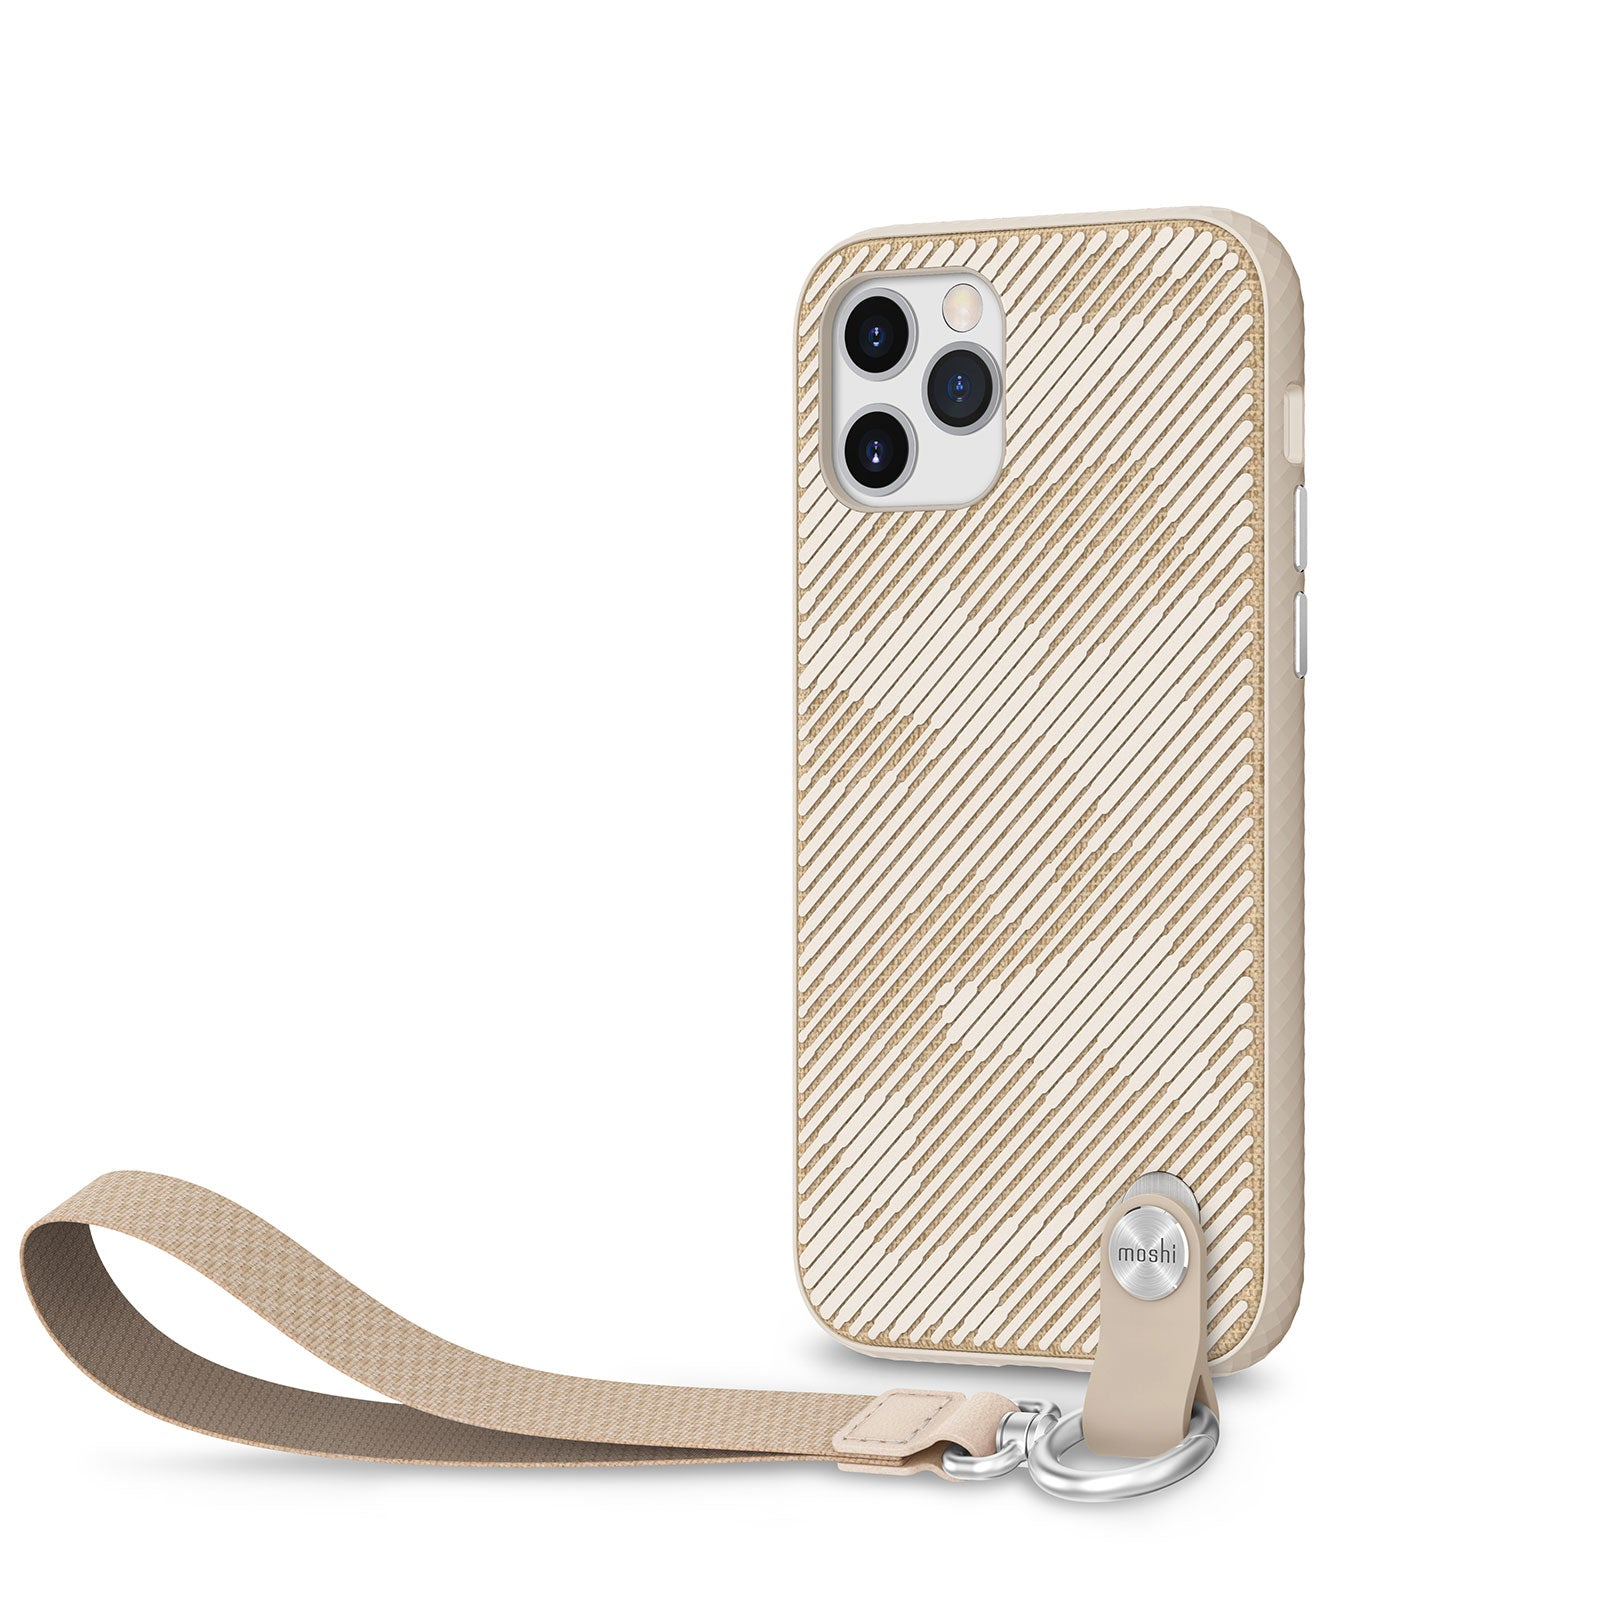 Moshi Altra Case w/ Wrist Strap For iPhone 12 / 12 Pro - Sahara Beige